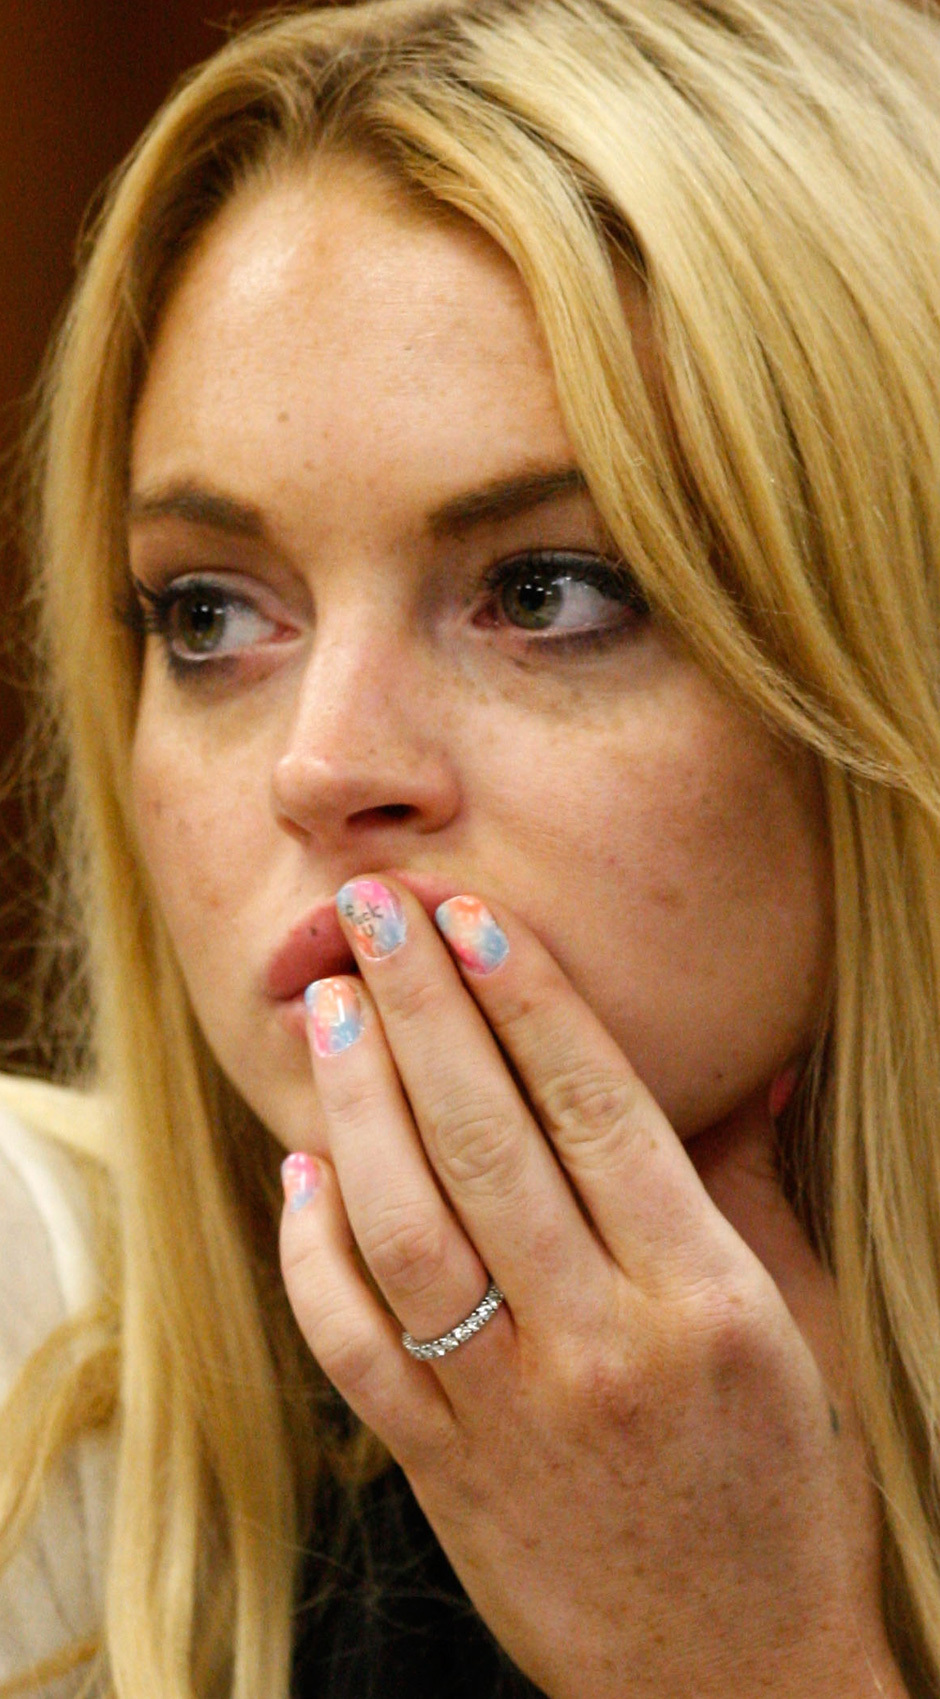 LINDSAY LOHAN FUCK U NAIL everything and anything. we are and will be. is based on our values.